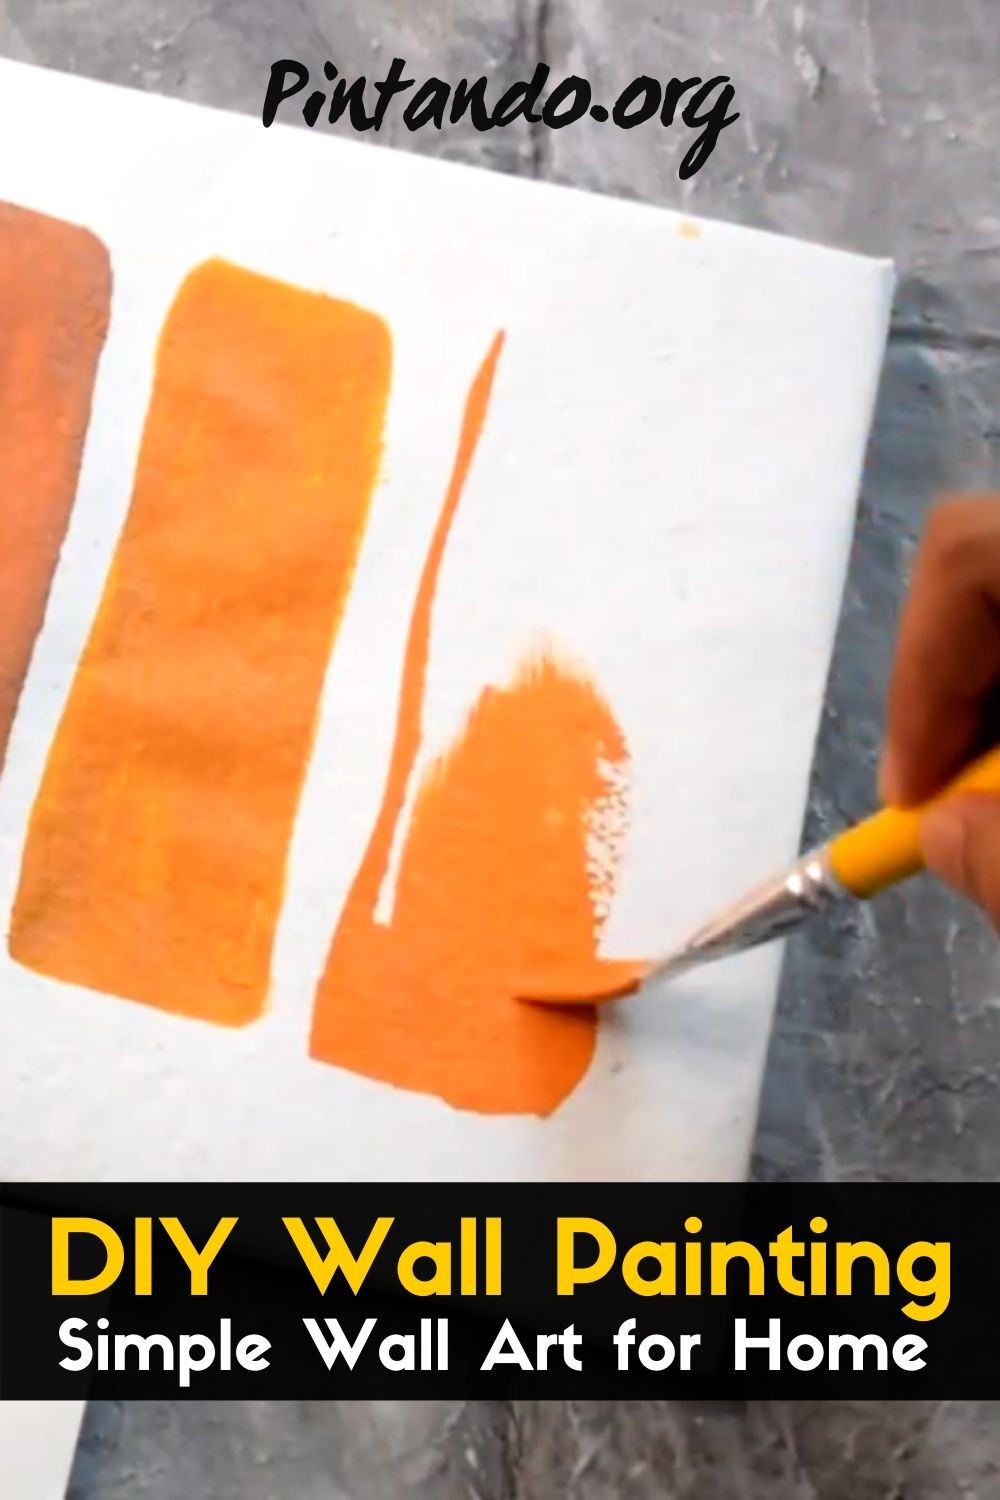 Simple Wall Art for Home _ DIY Wall Painting